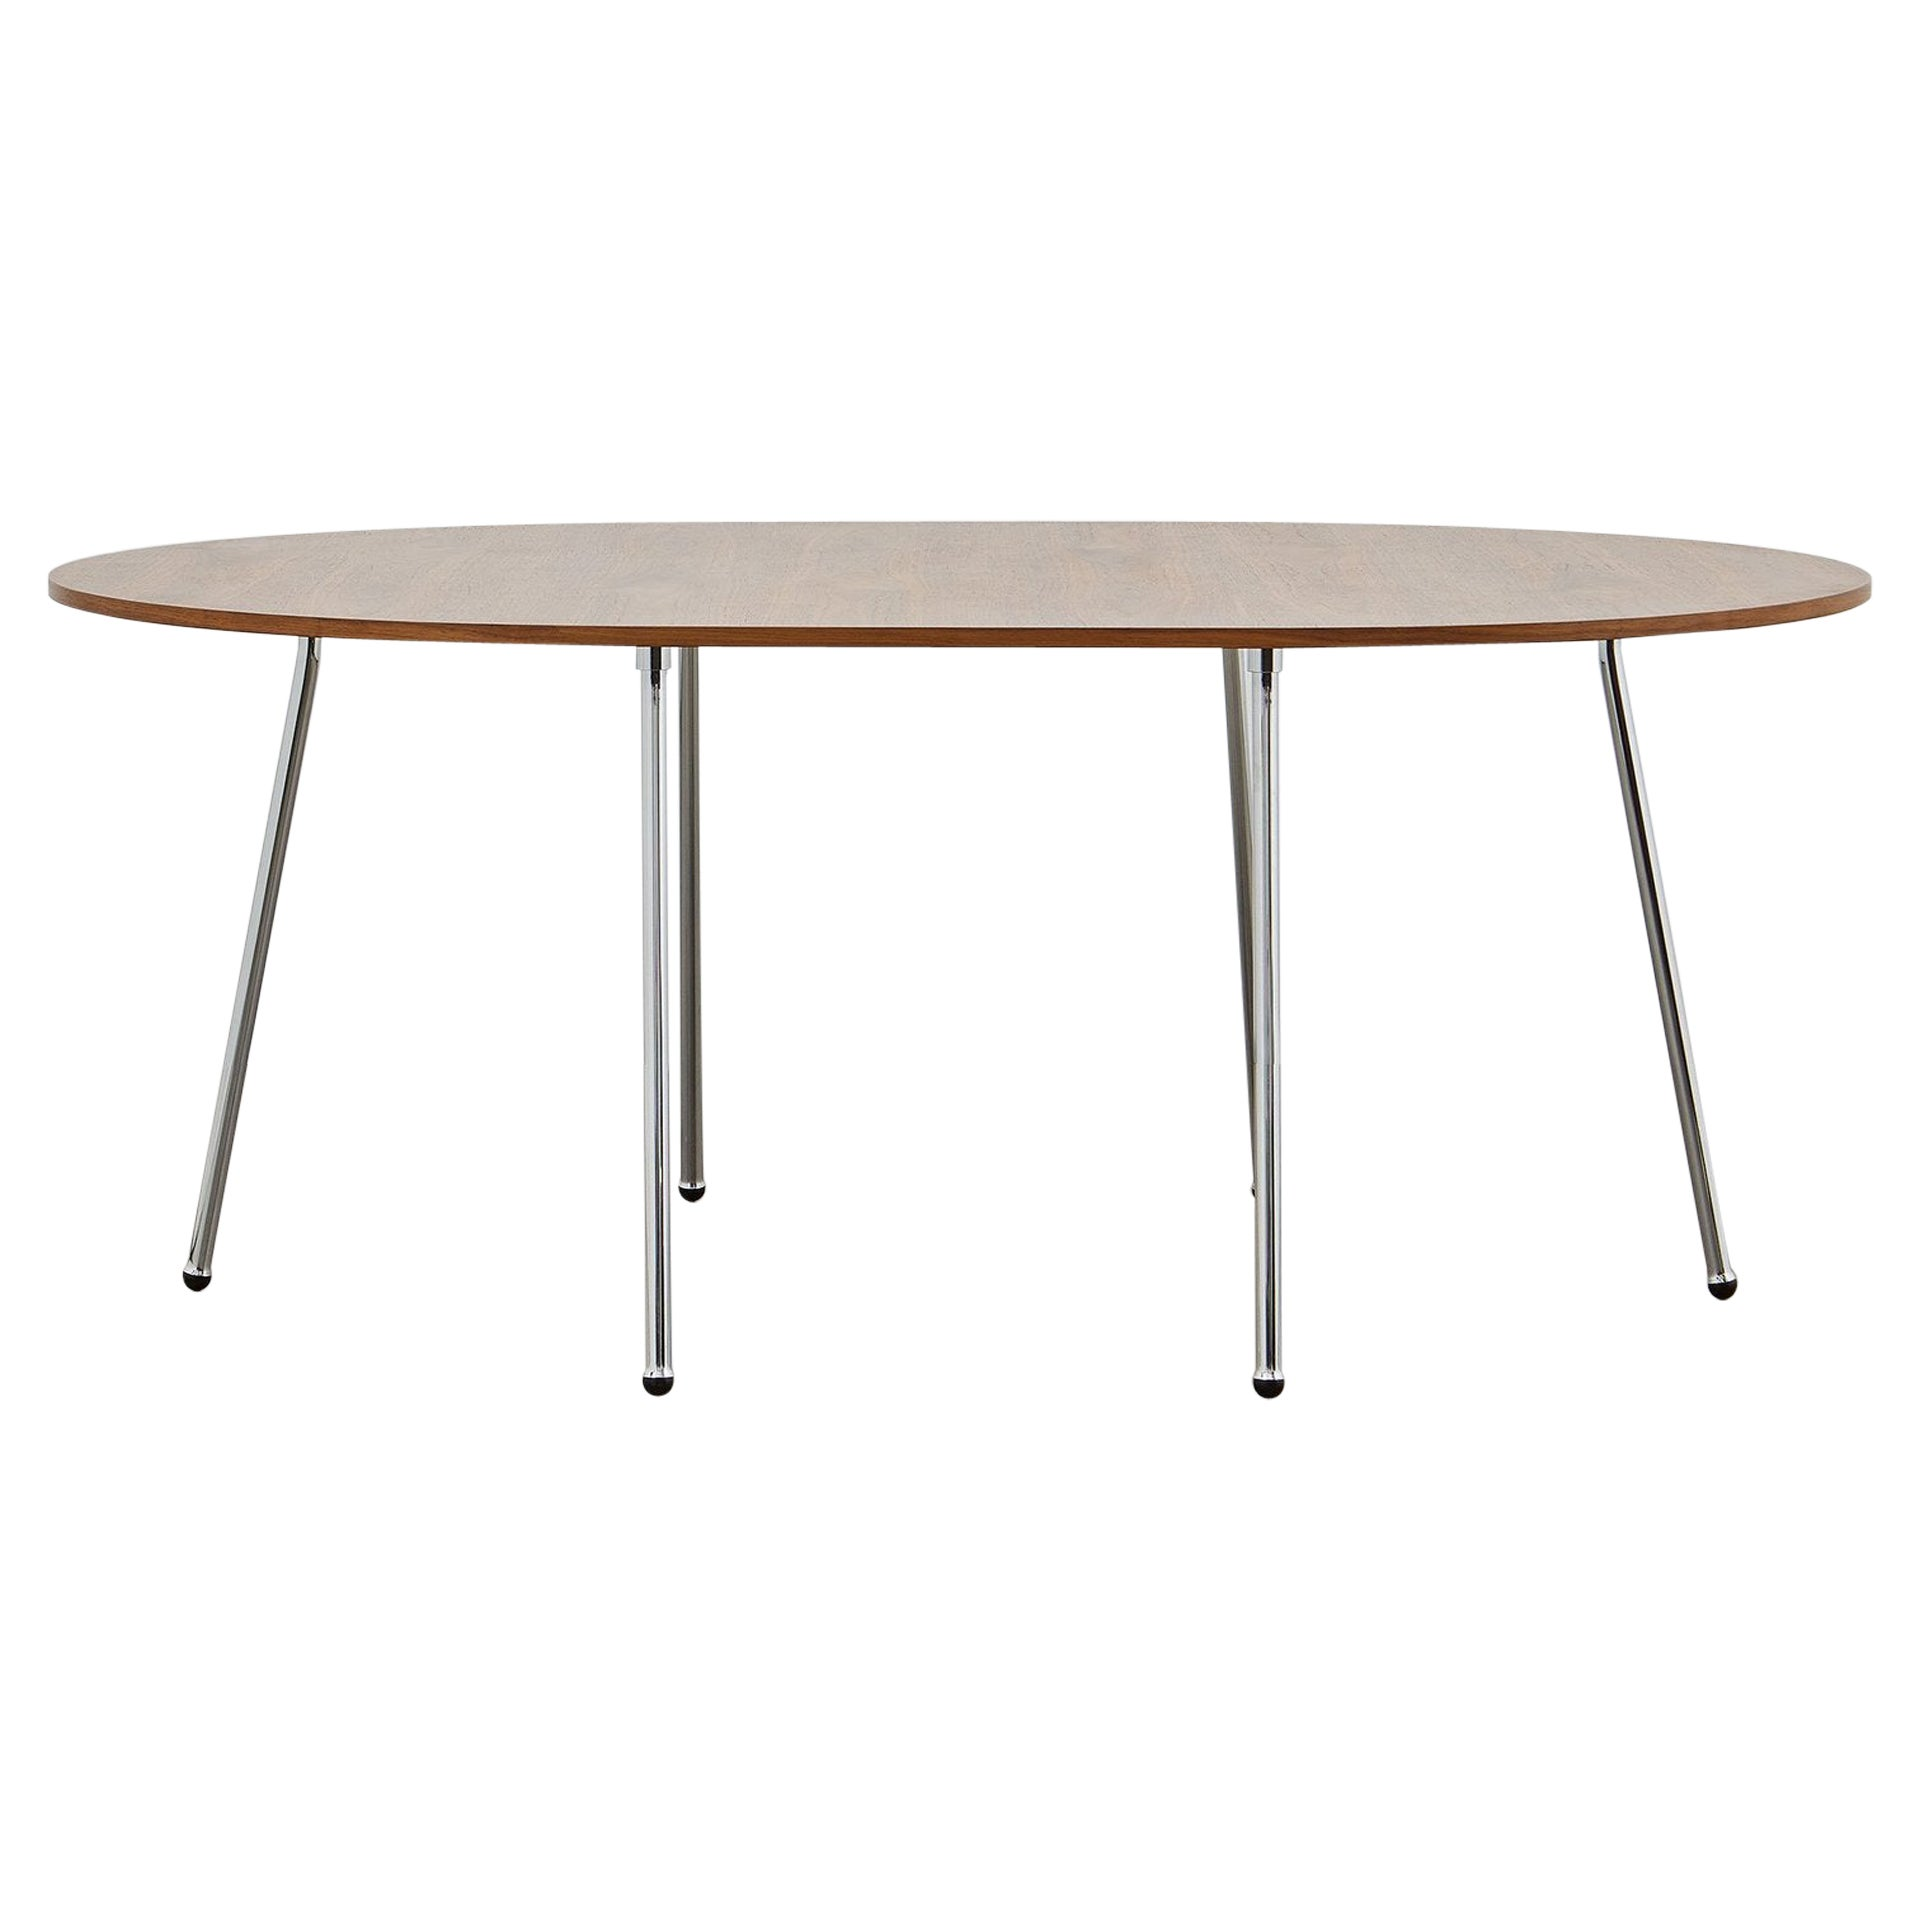 PH Dining Table, Chrome, Natural Oak Veneer Table Plate and Edge